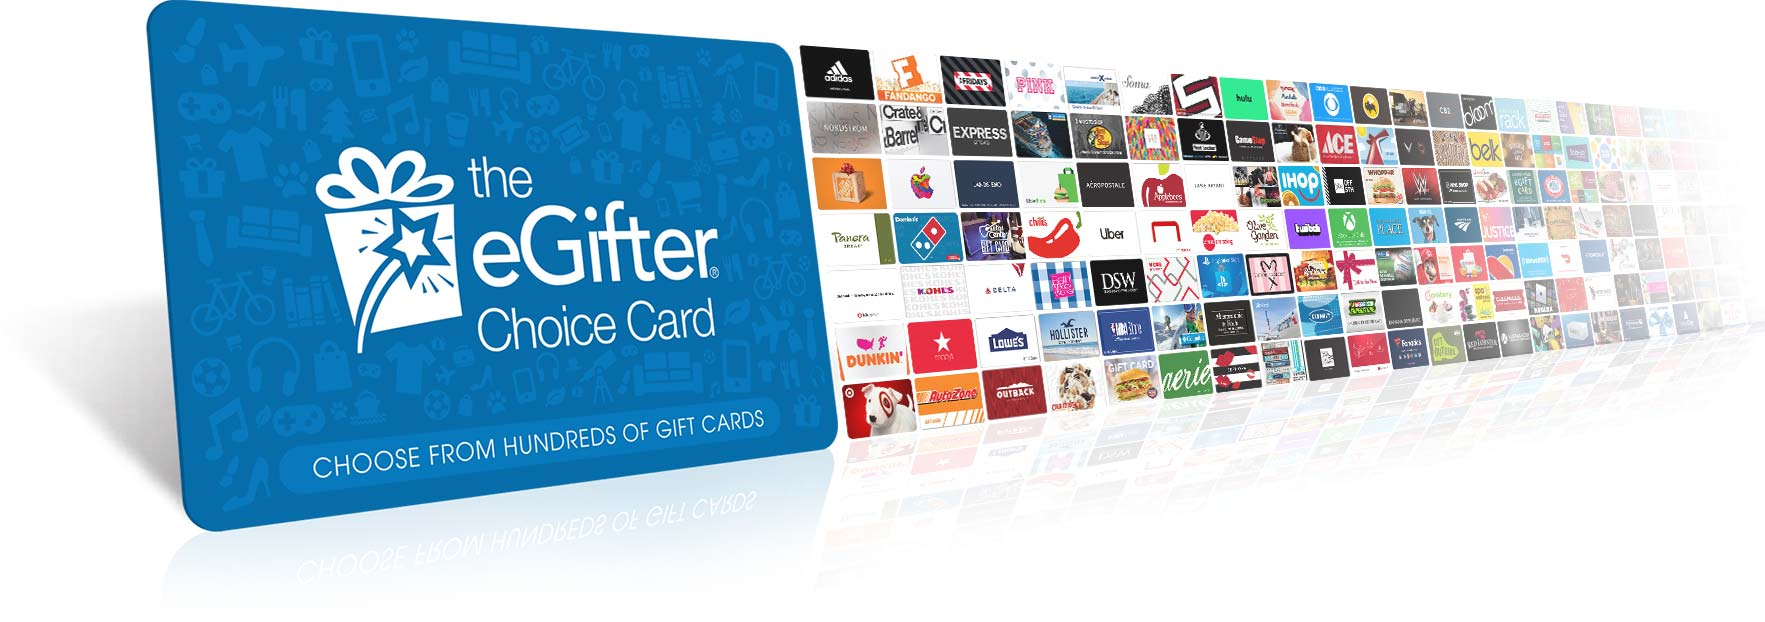 eGifter - Online Gift Cards & Group Gifting